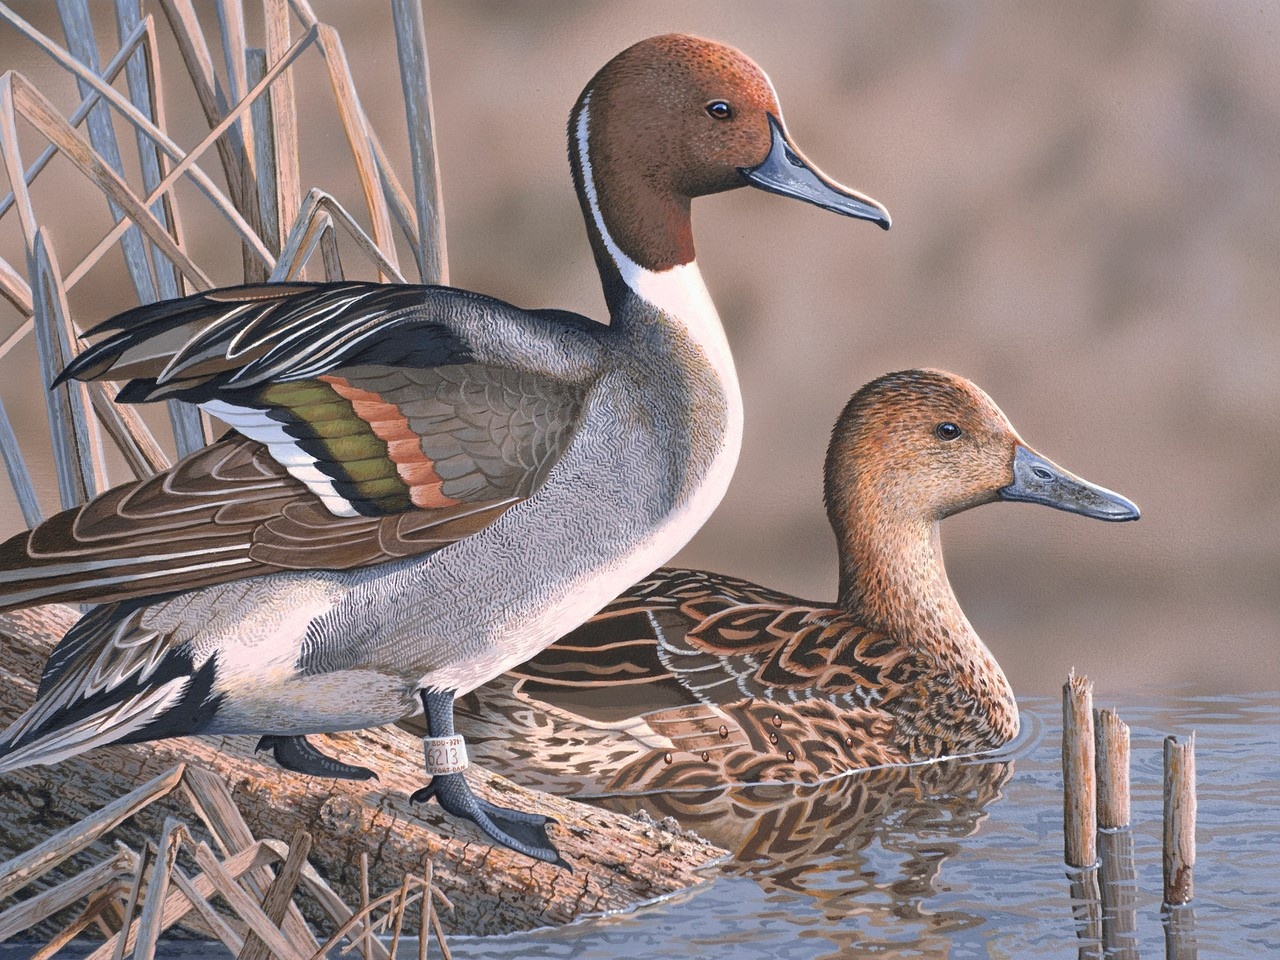 Pintail ducks